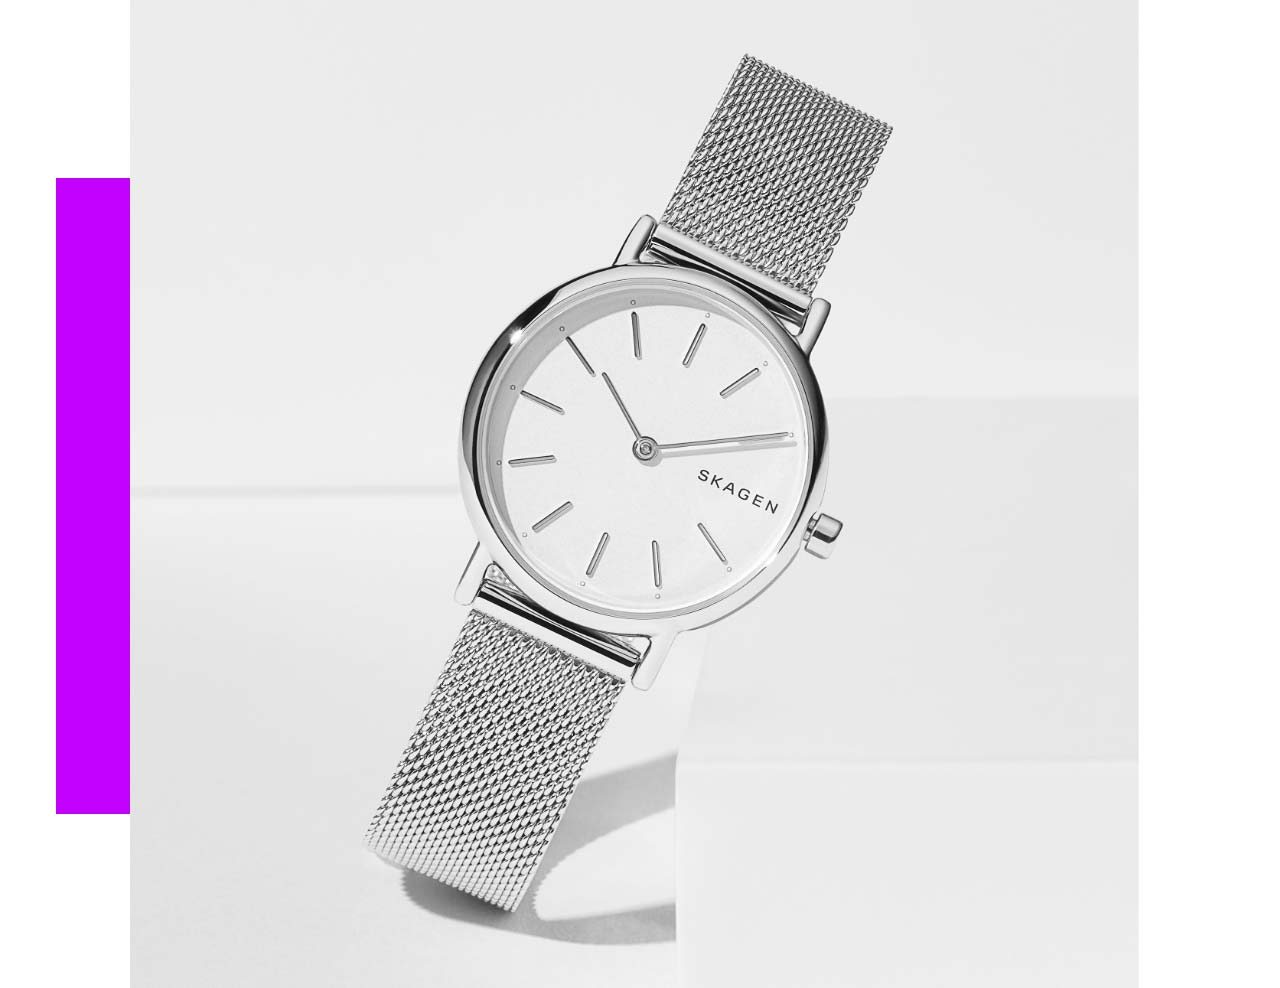 Silver Hald Watch with a steel-mesh strap